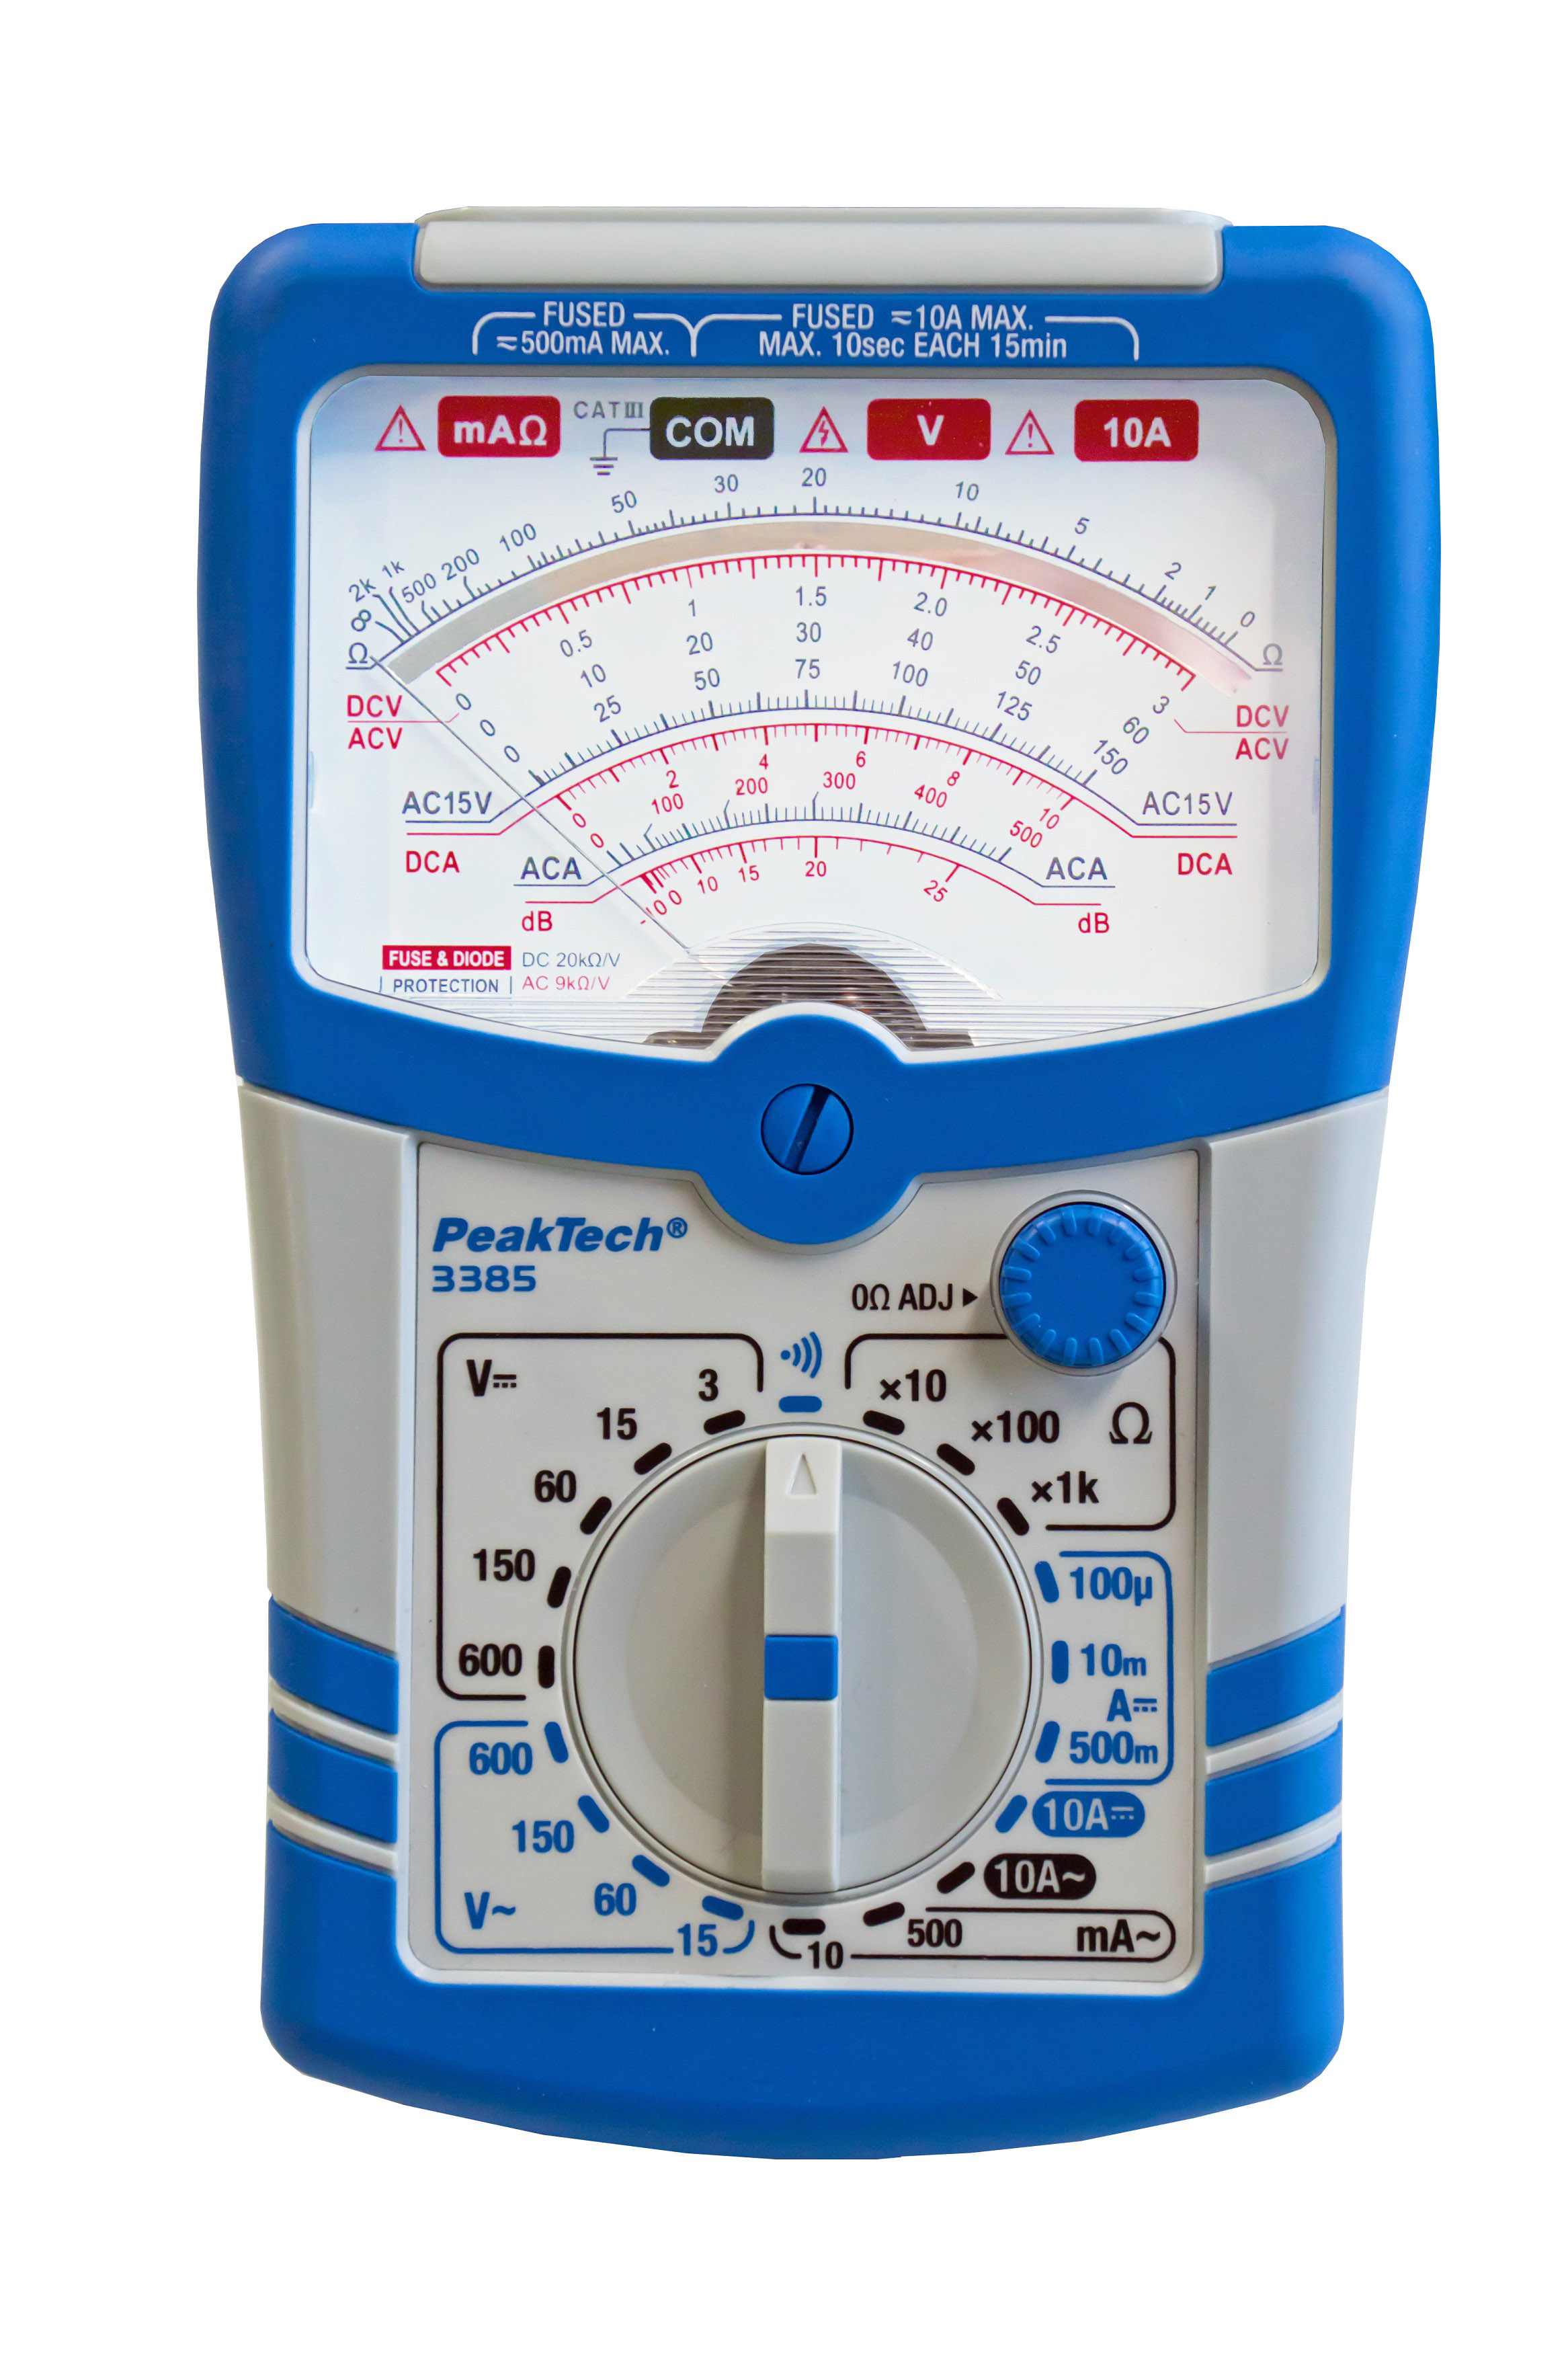 «PeakTech® P 3385» Analog multimeter, 600V AC/DC, 10A AC/DC, CAT III